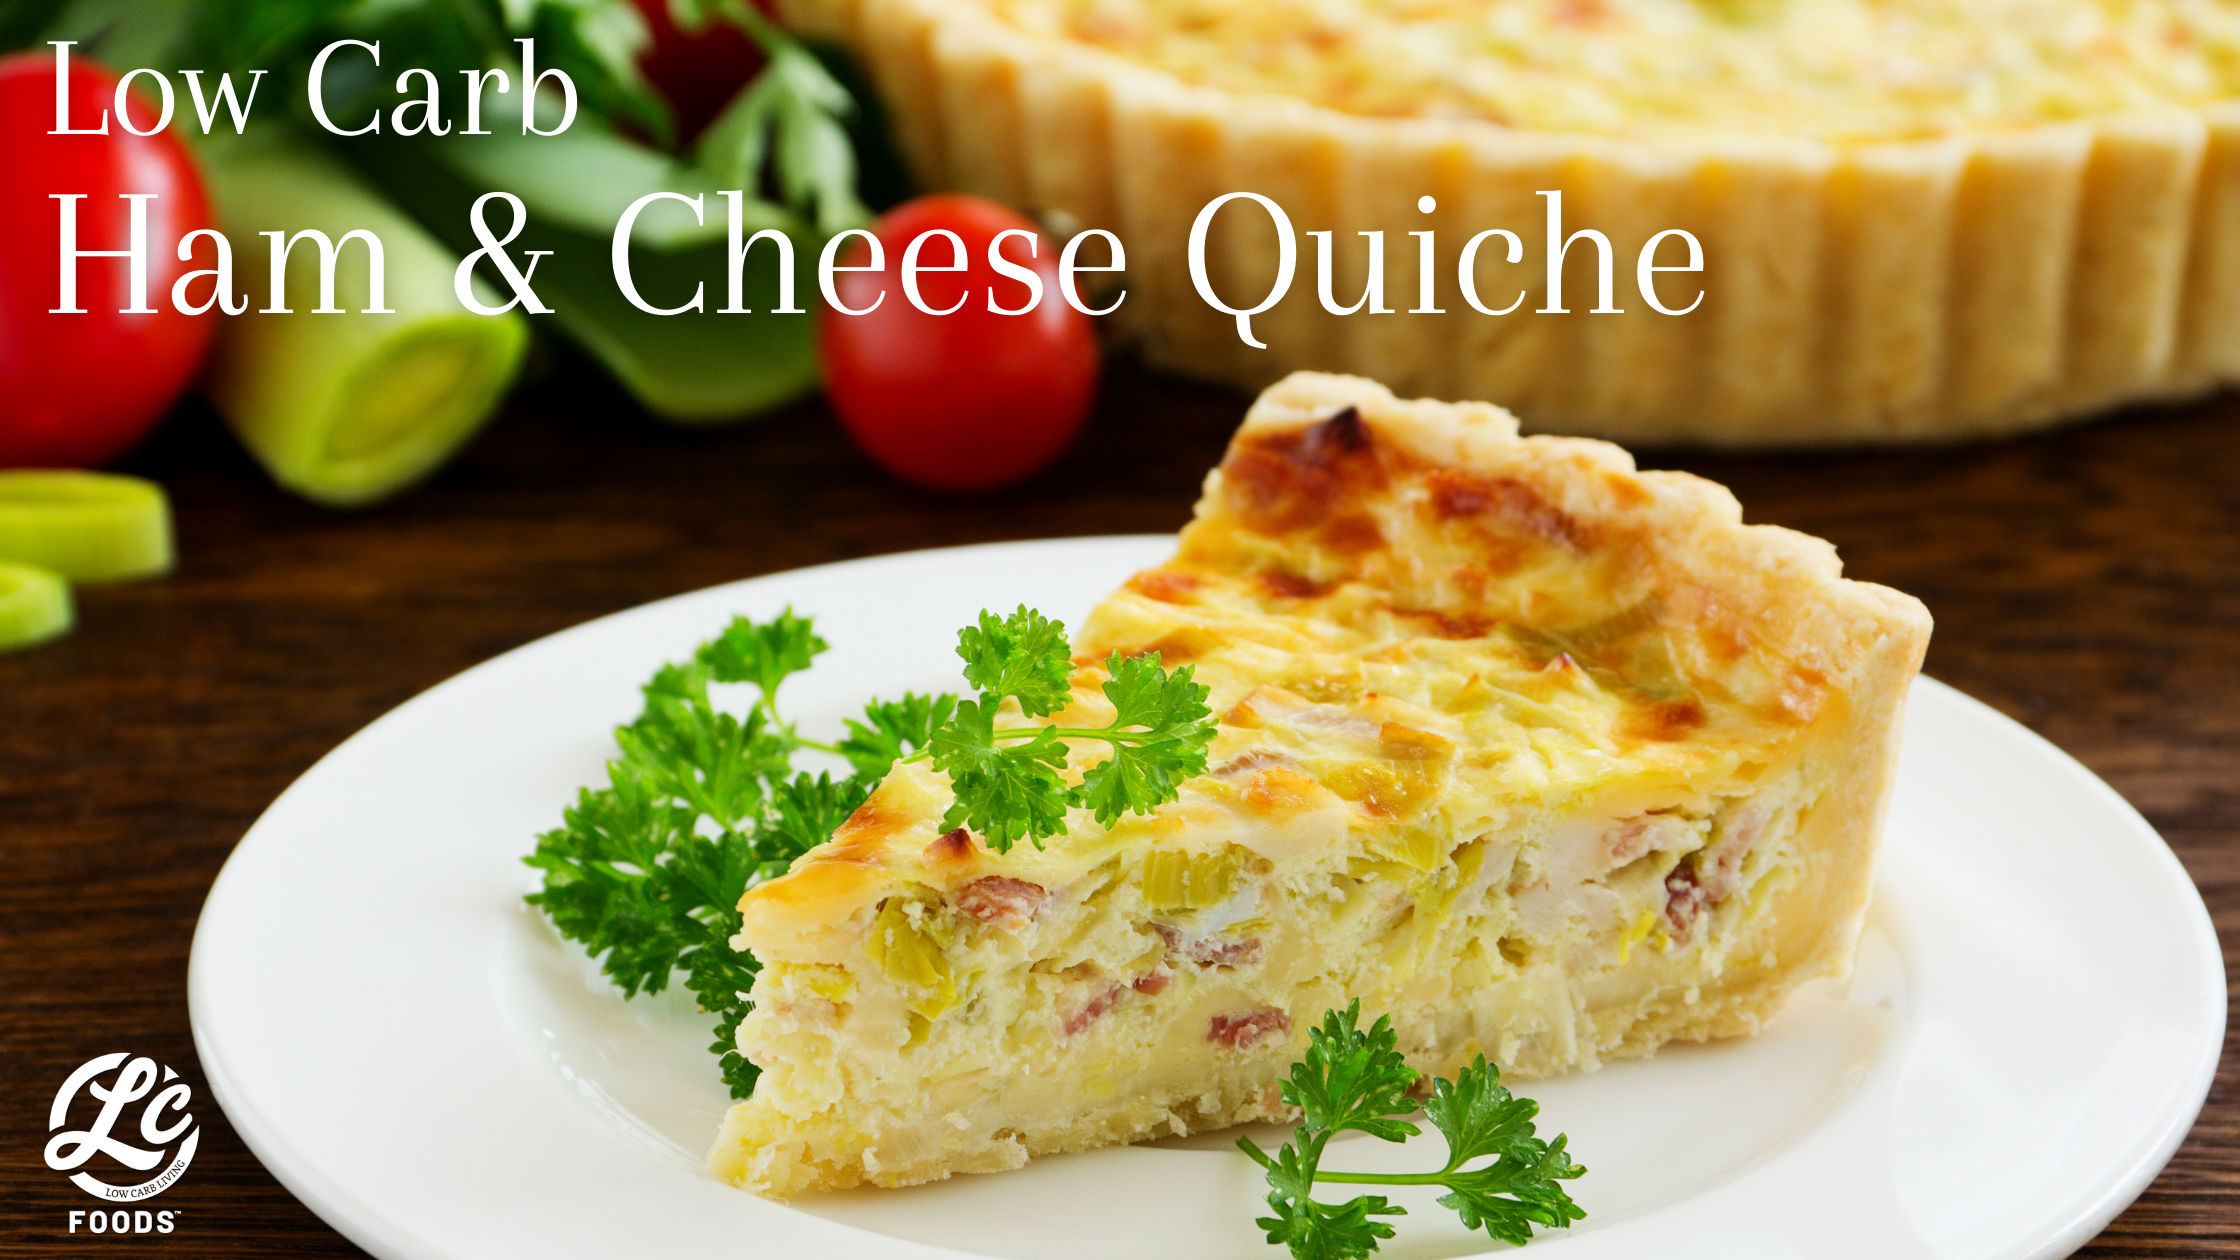 Thumbnail for Low Carb Ham & Cheese Quiche